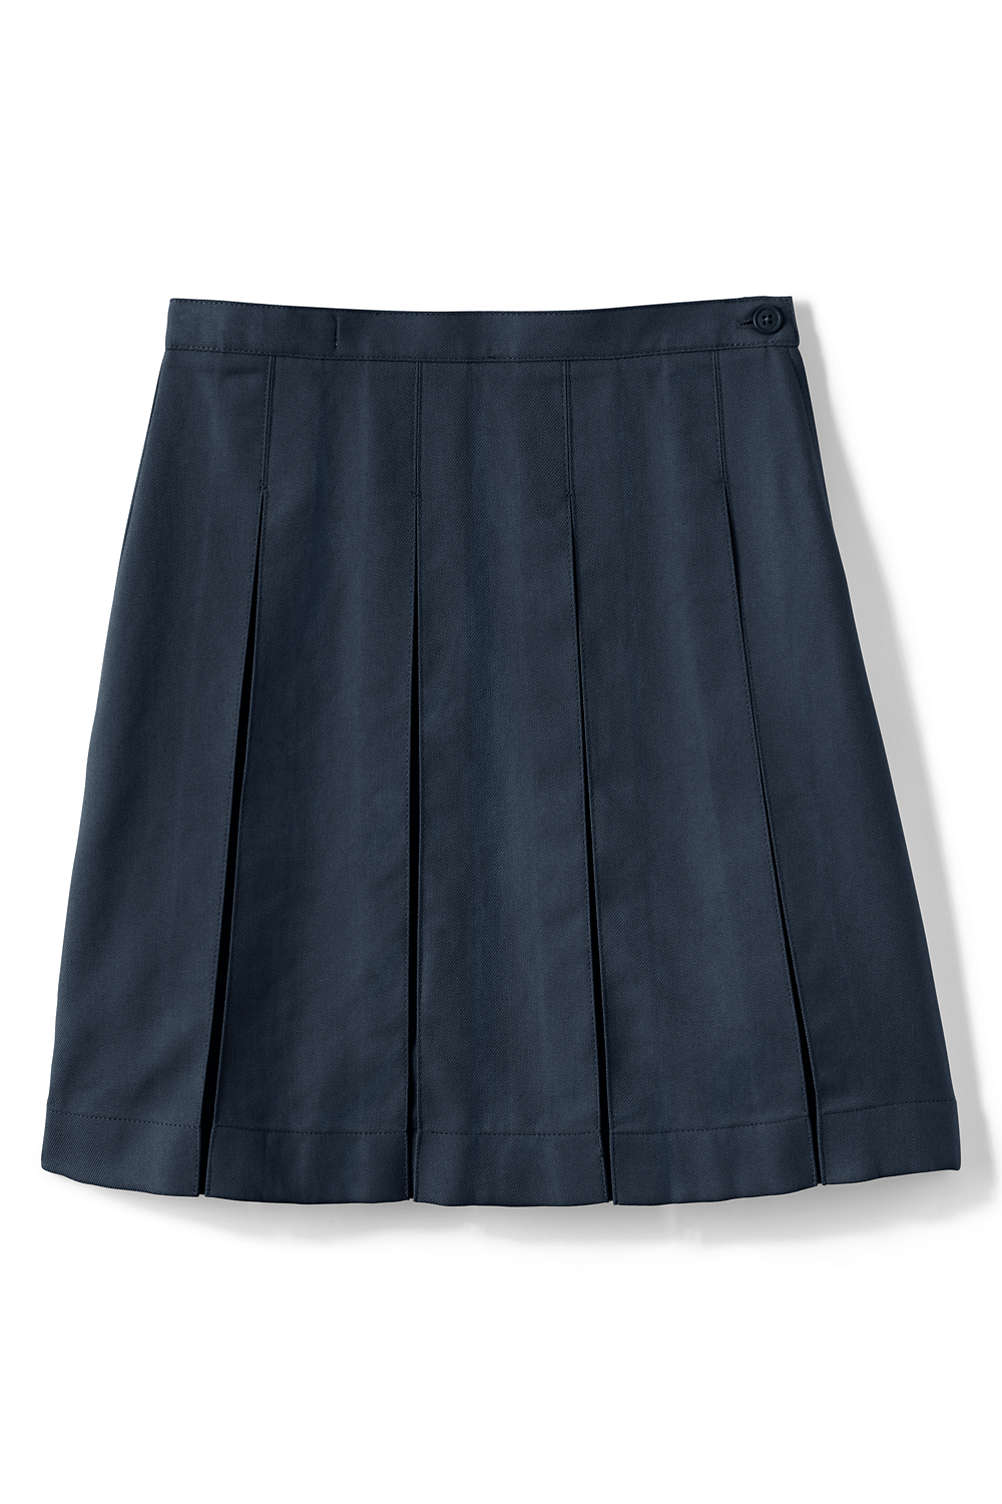 67bd039198 School Uniform Solid Box Pleat Skirt Below the Knee from Lands' End